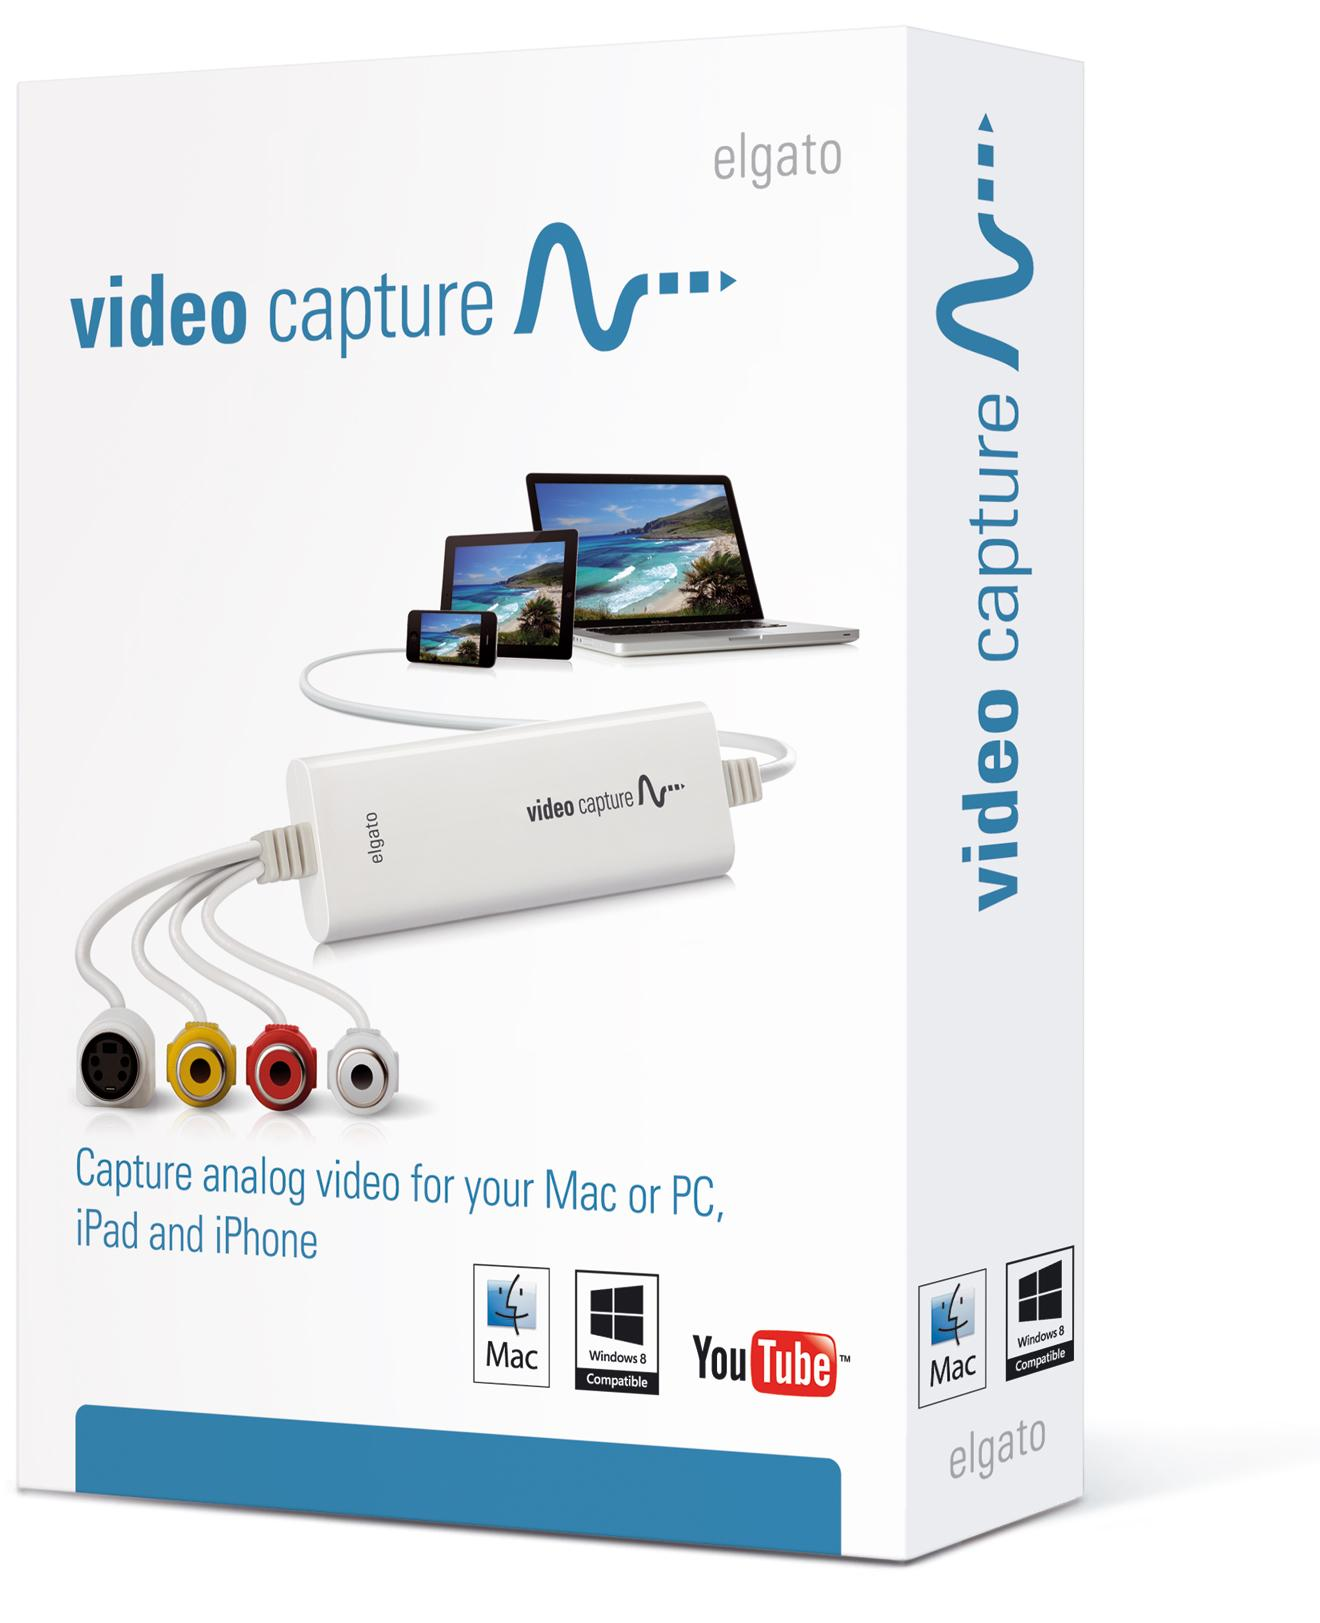 elgato capture card how to connect gamecube